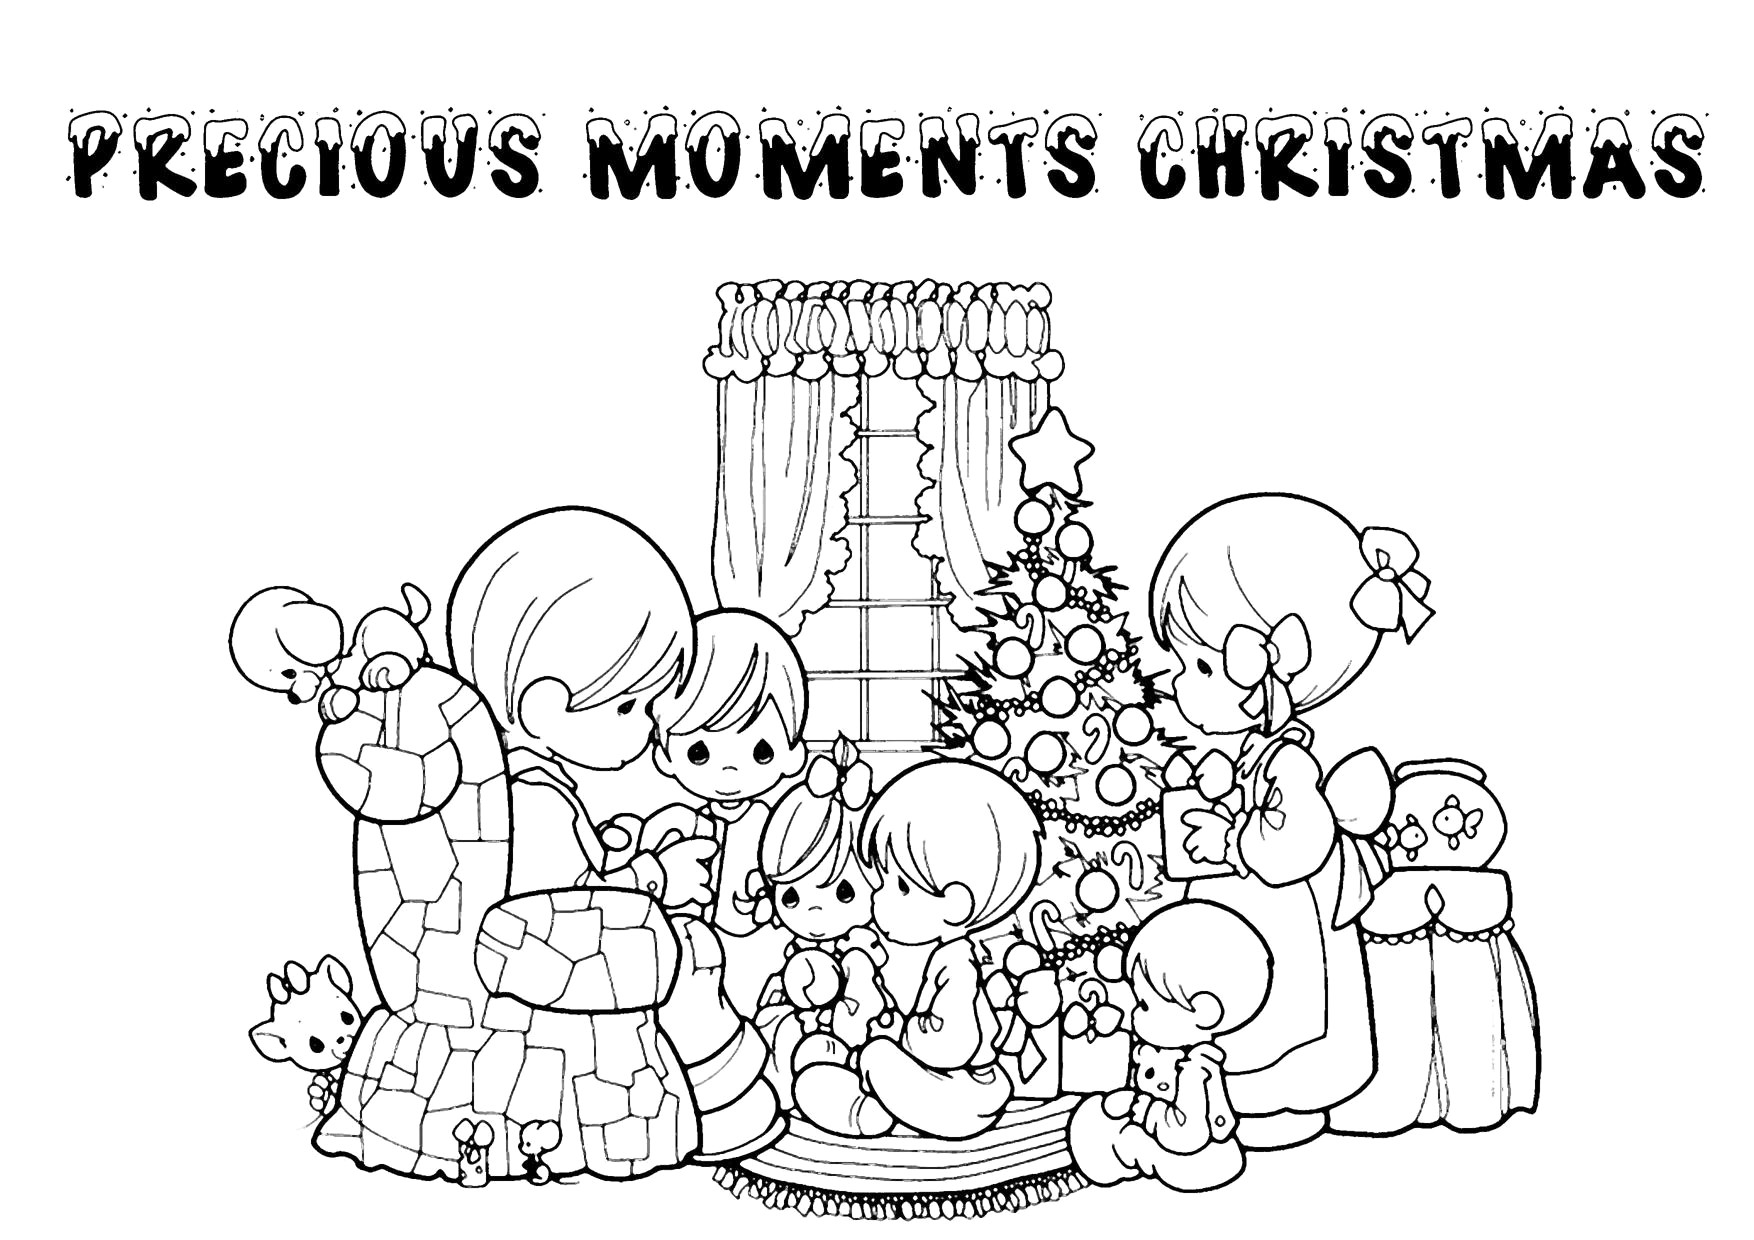 Christmas Coloring Pages For Printable With Precious Moments Thanhhoacar Com